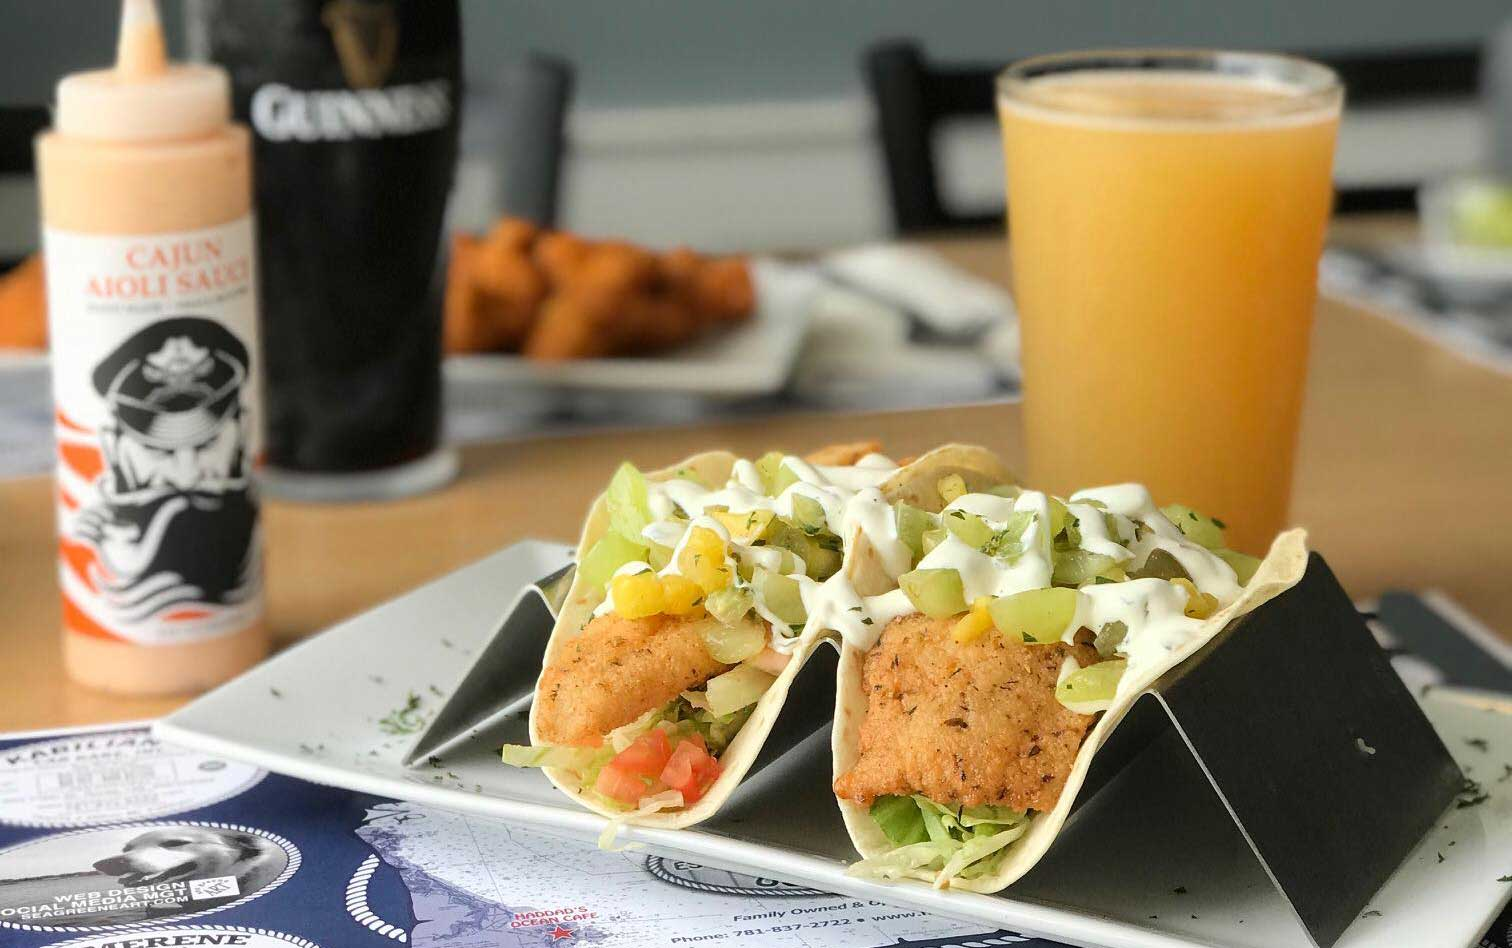 Best-Seafood-Restaurant-Haddads-Ocean-Cafe--Fish-Tacos-with-house-Cajun-Aioli